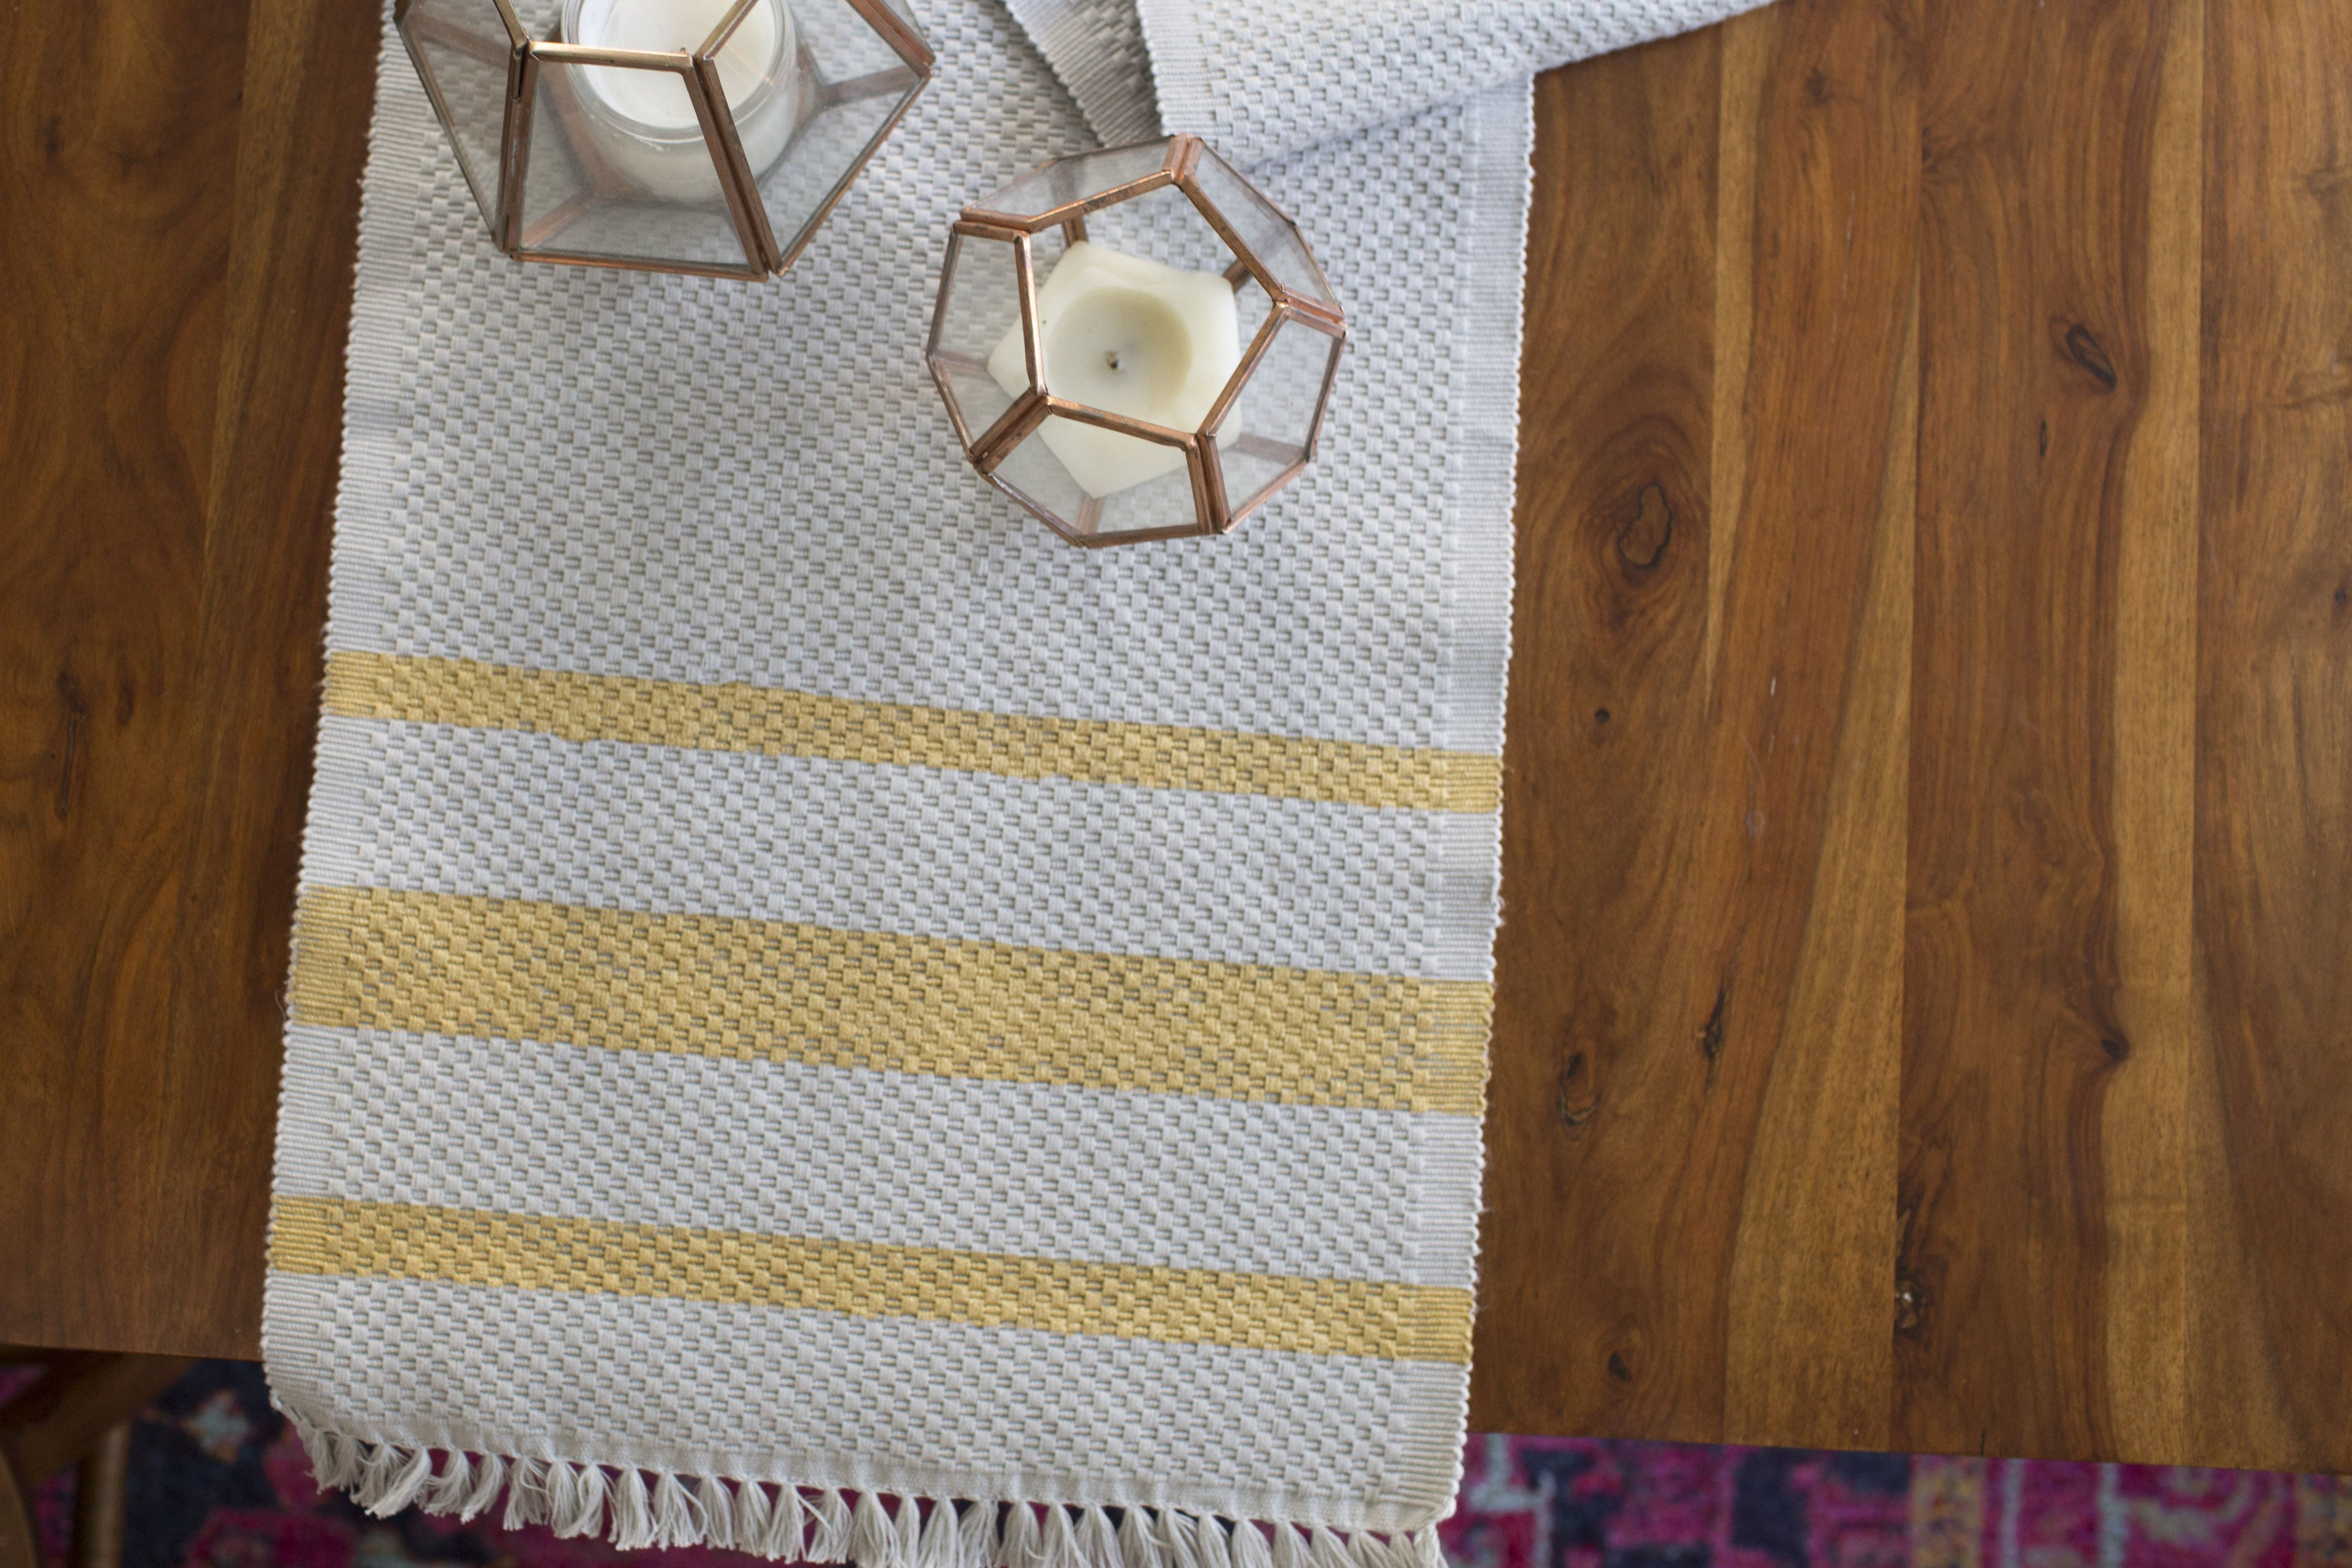 direction of laying hardwood floors of how to make a table runner in 30 minutes or less regarding runner final2 5b89e09c46e0fb0050601496 5b9fd585c9e77c00573a82a3